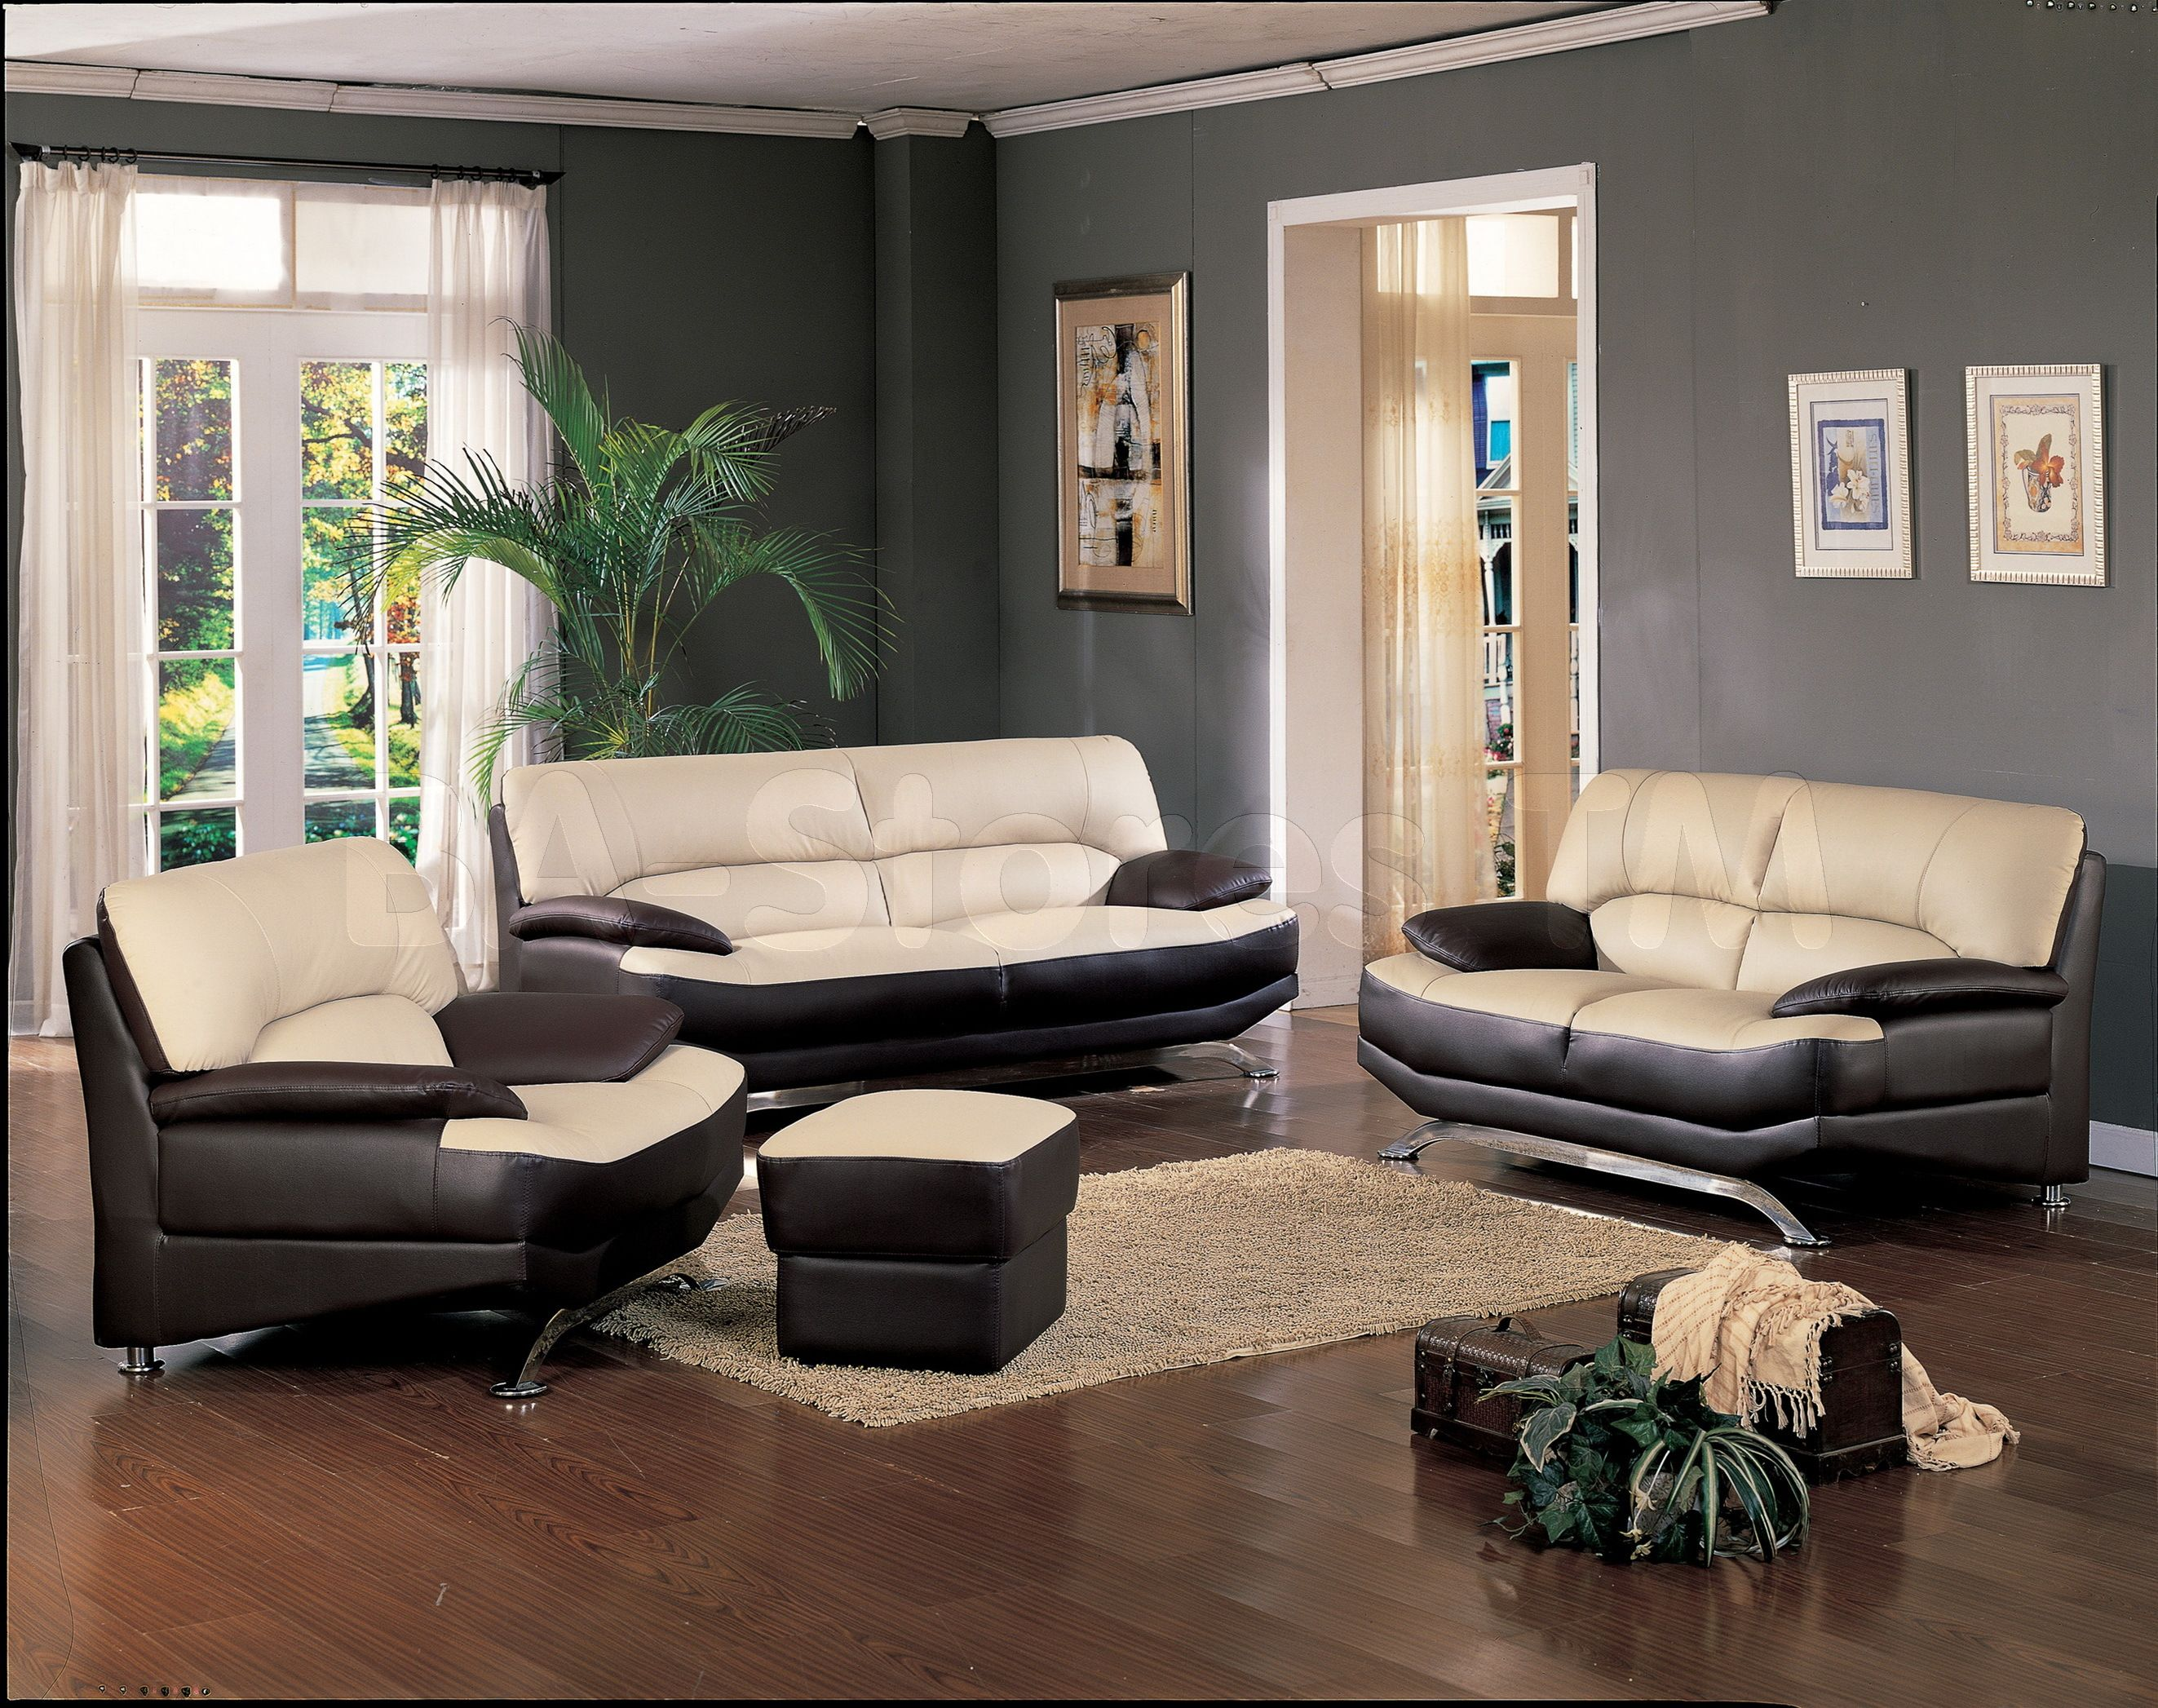 Best Black And Cream Leather Couch On Dark Brown Wooden Floor Completed By White Fabric Window Curt 400 x 300